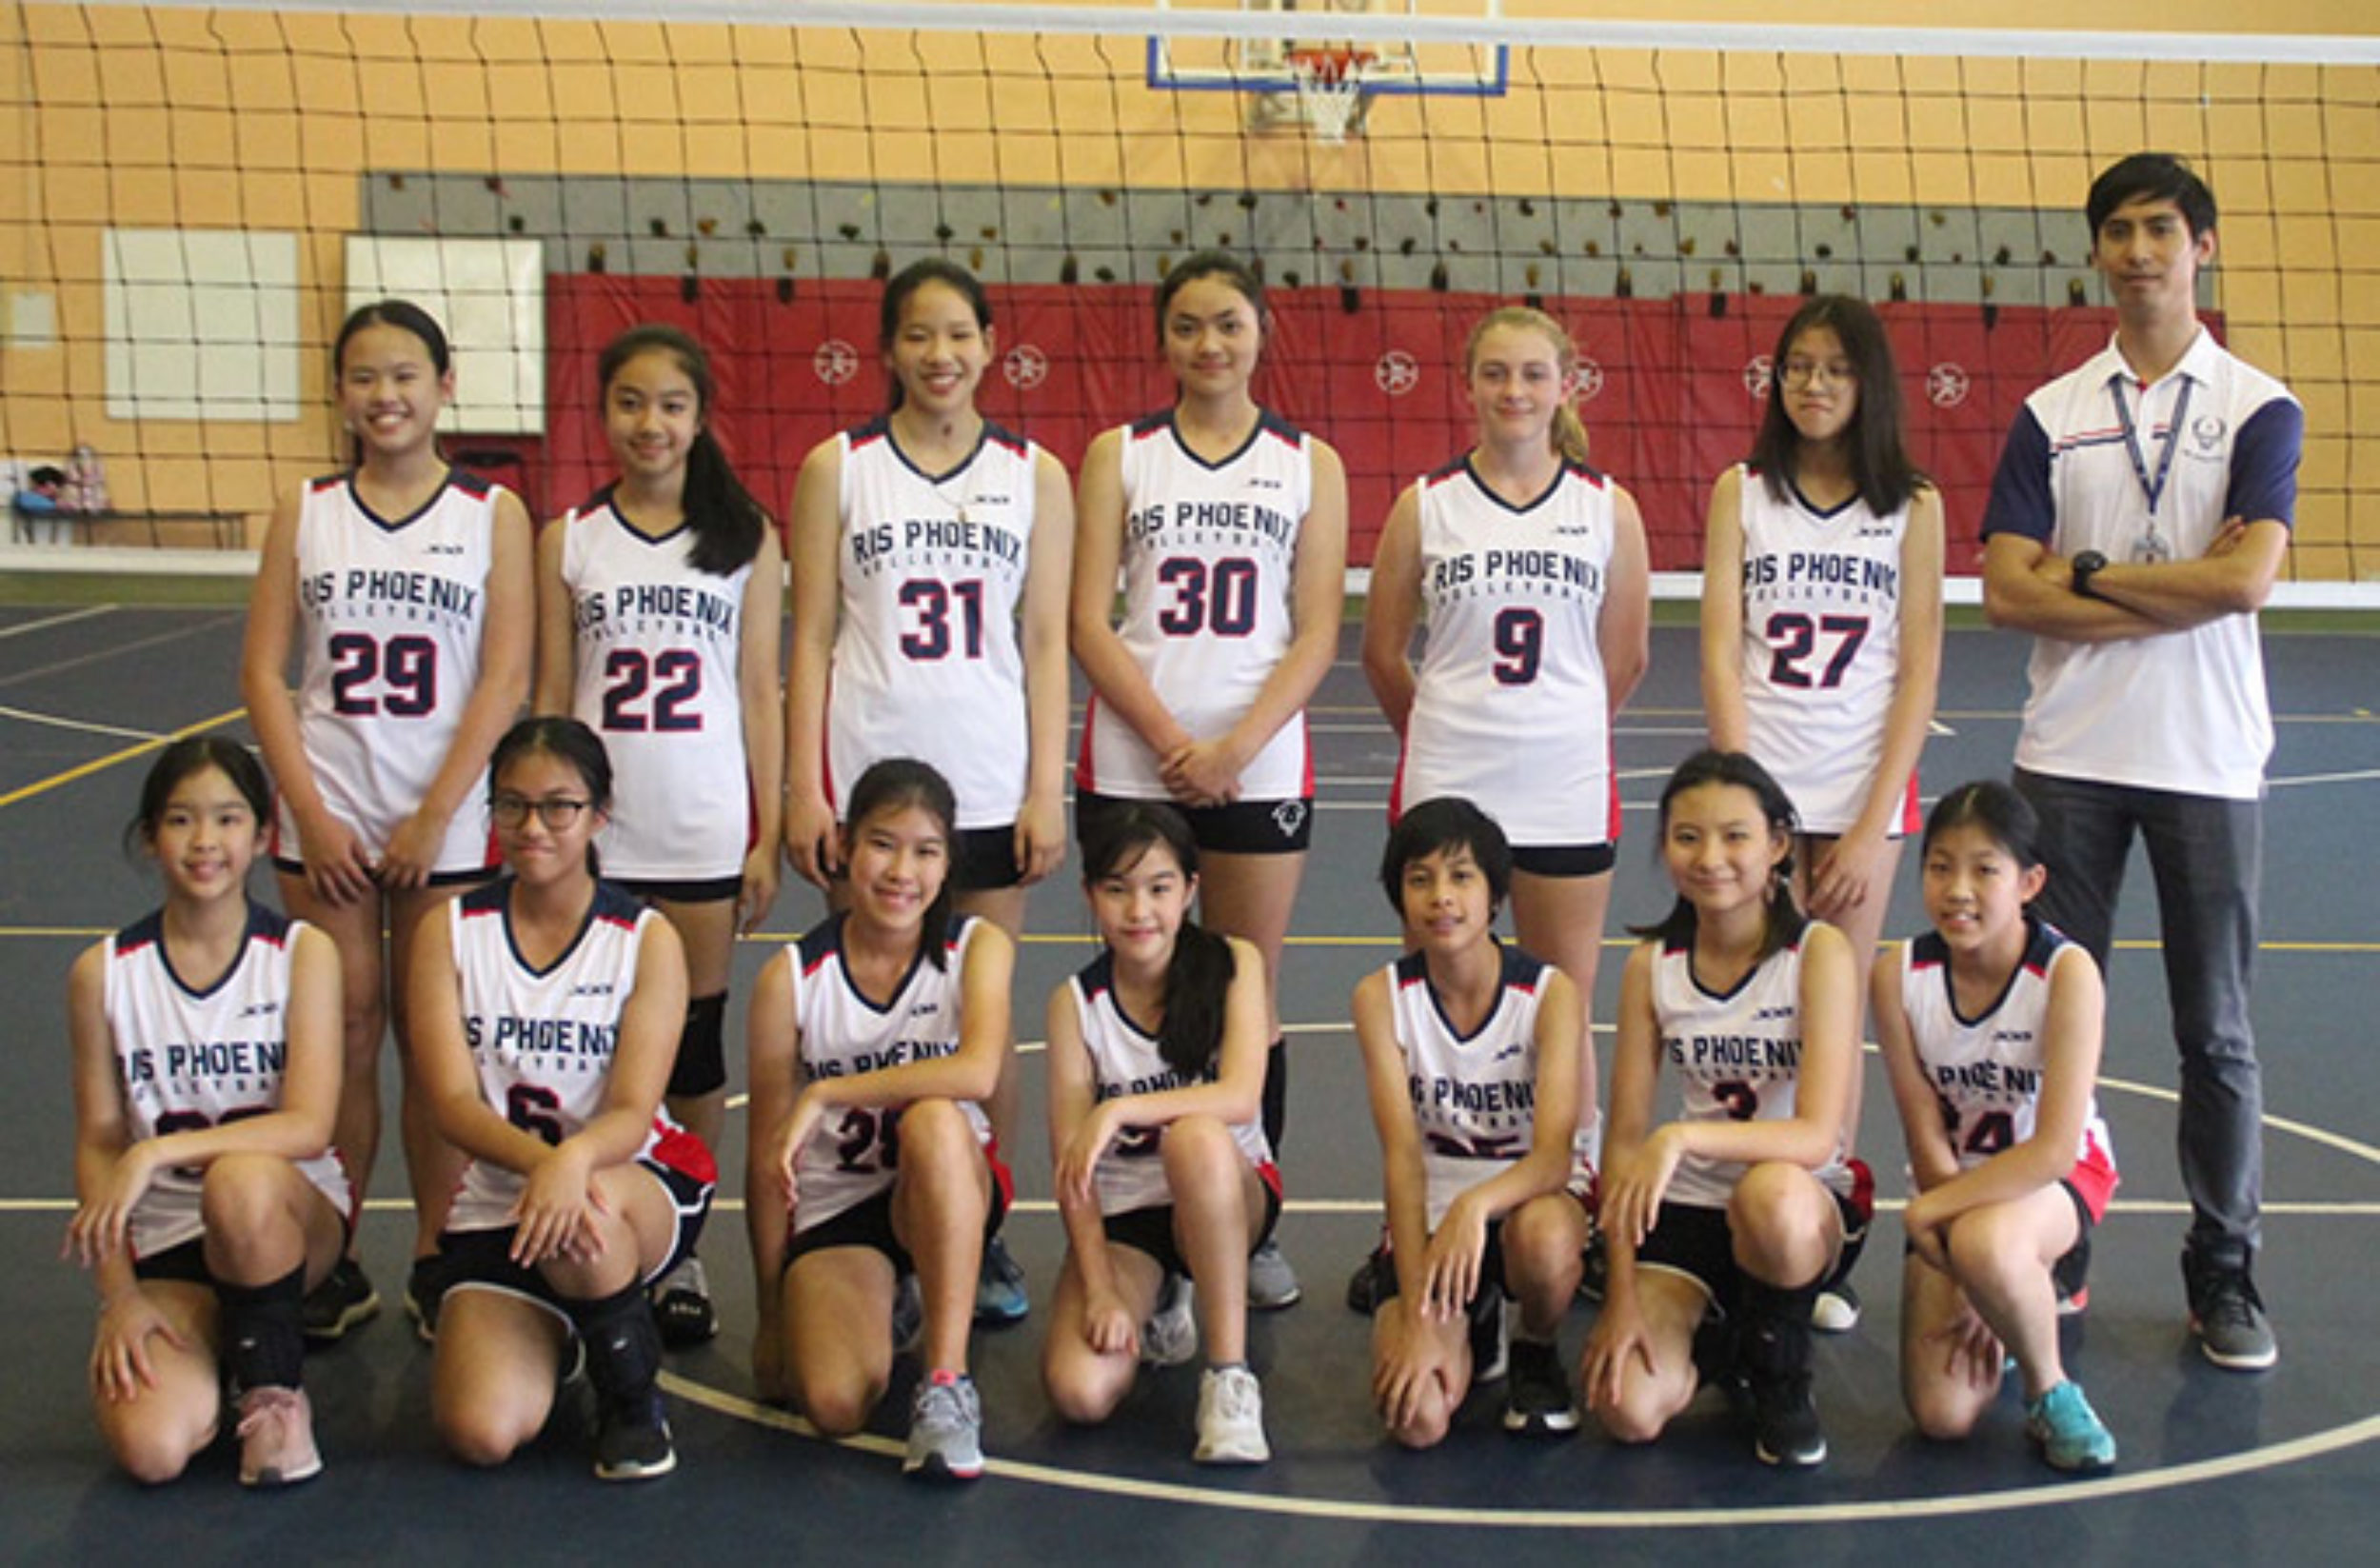 U13 Girls Volleyball